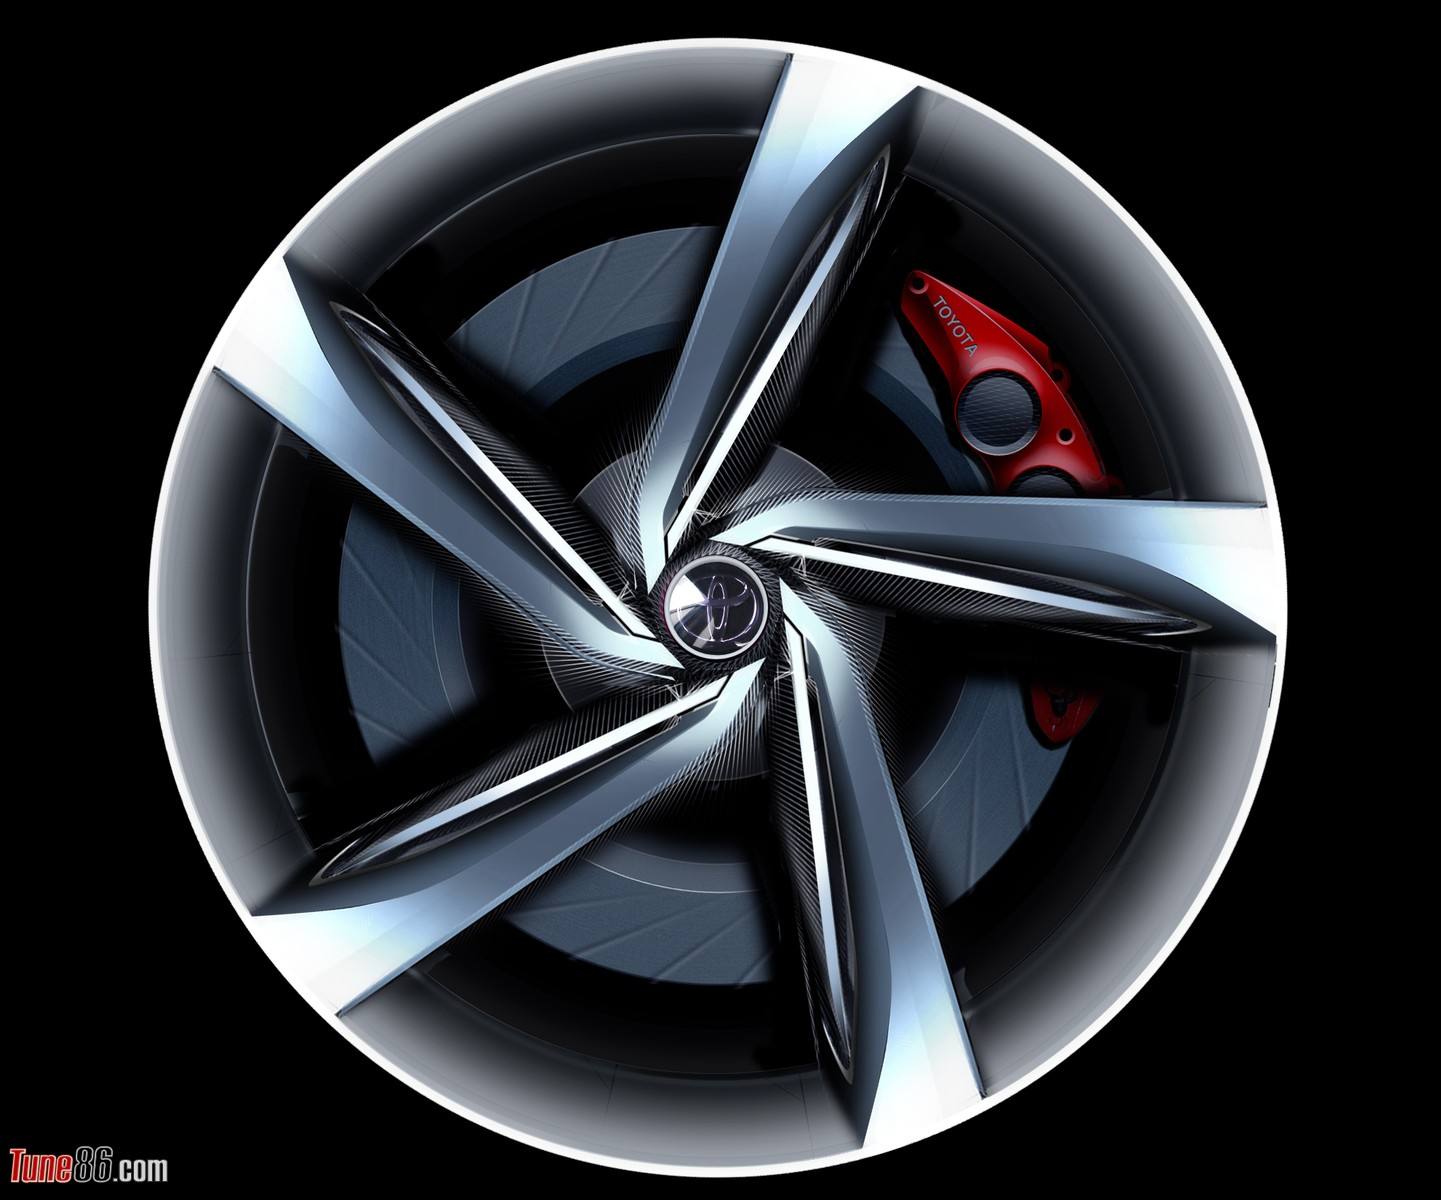 Volvo concept truck car body design - Wheel On Pinterest Wheels Sketches And Volvo